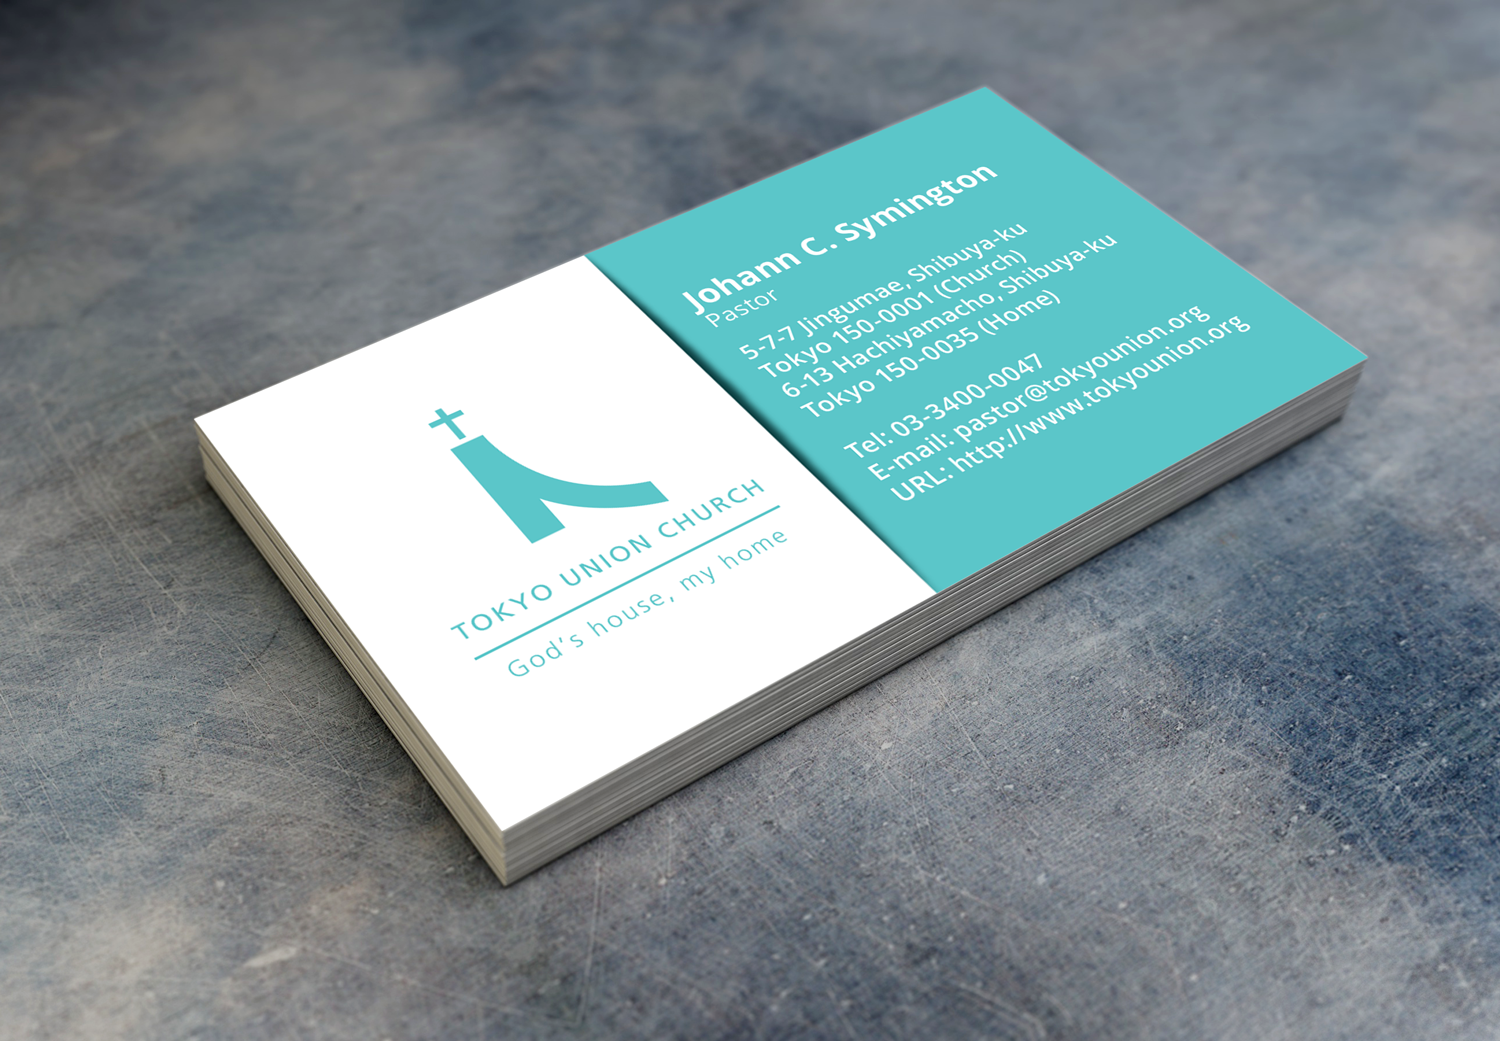 Elegant modern business business card design for self employed by business card design by picasso1 for self employed design 13733179 reheart Image collections